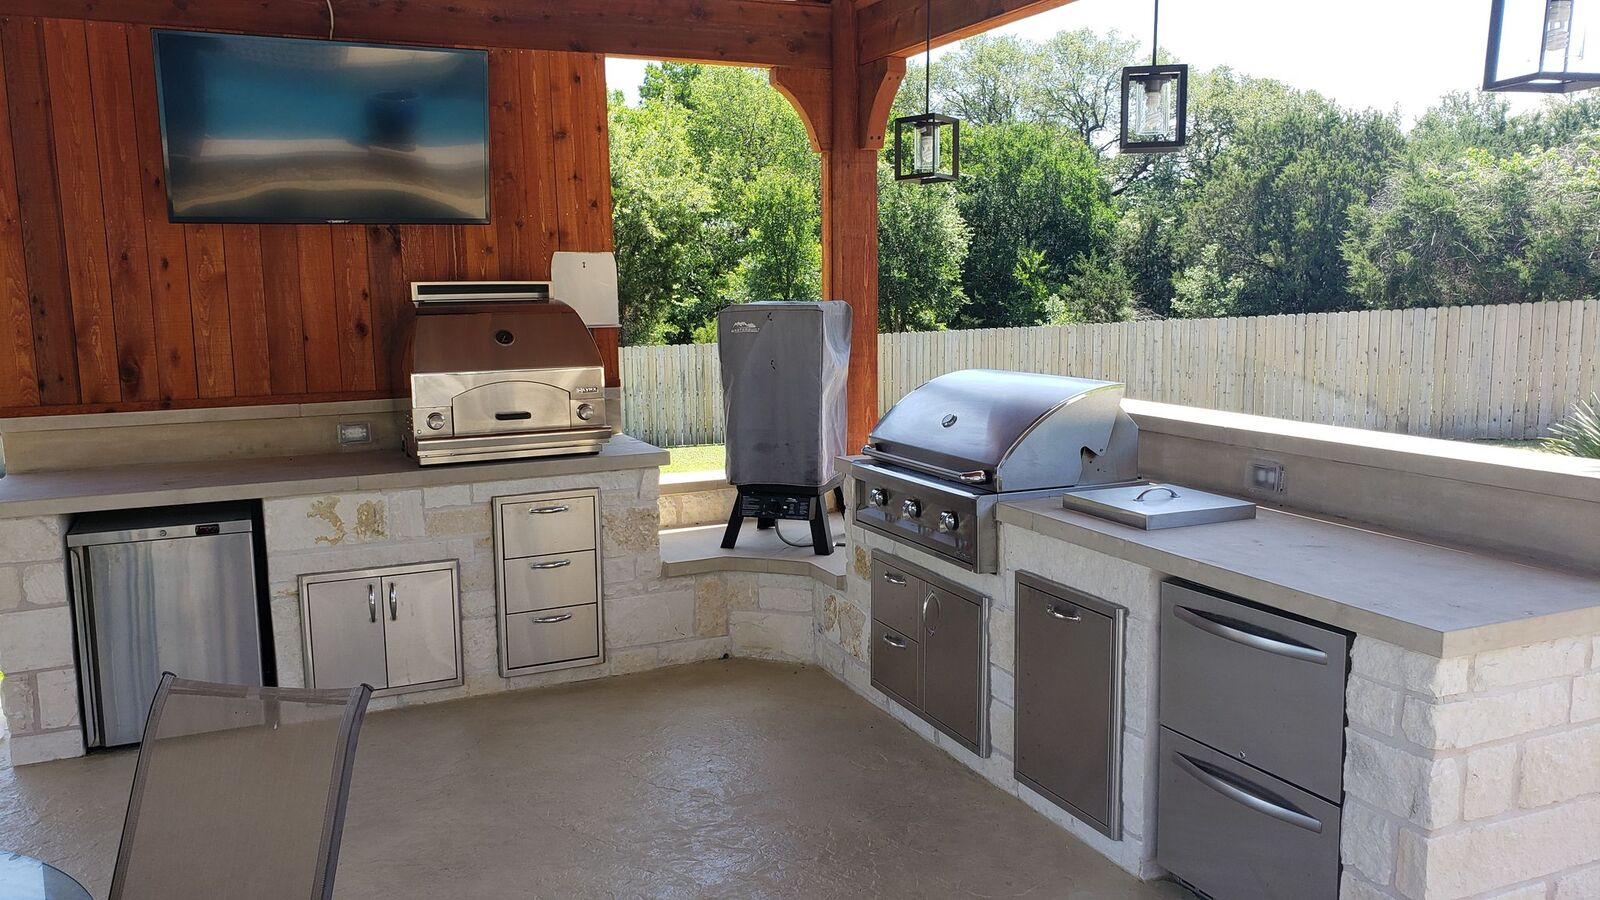 The-outdoor-kitchen-has-everything-an-outdoor-gourmet-needs